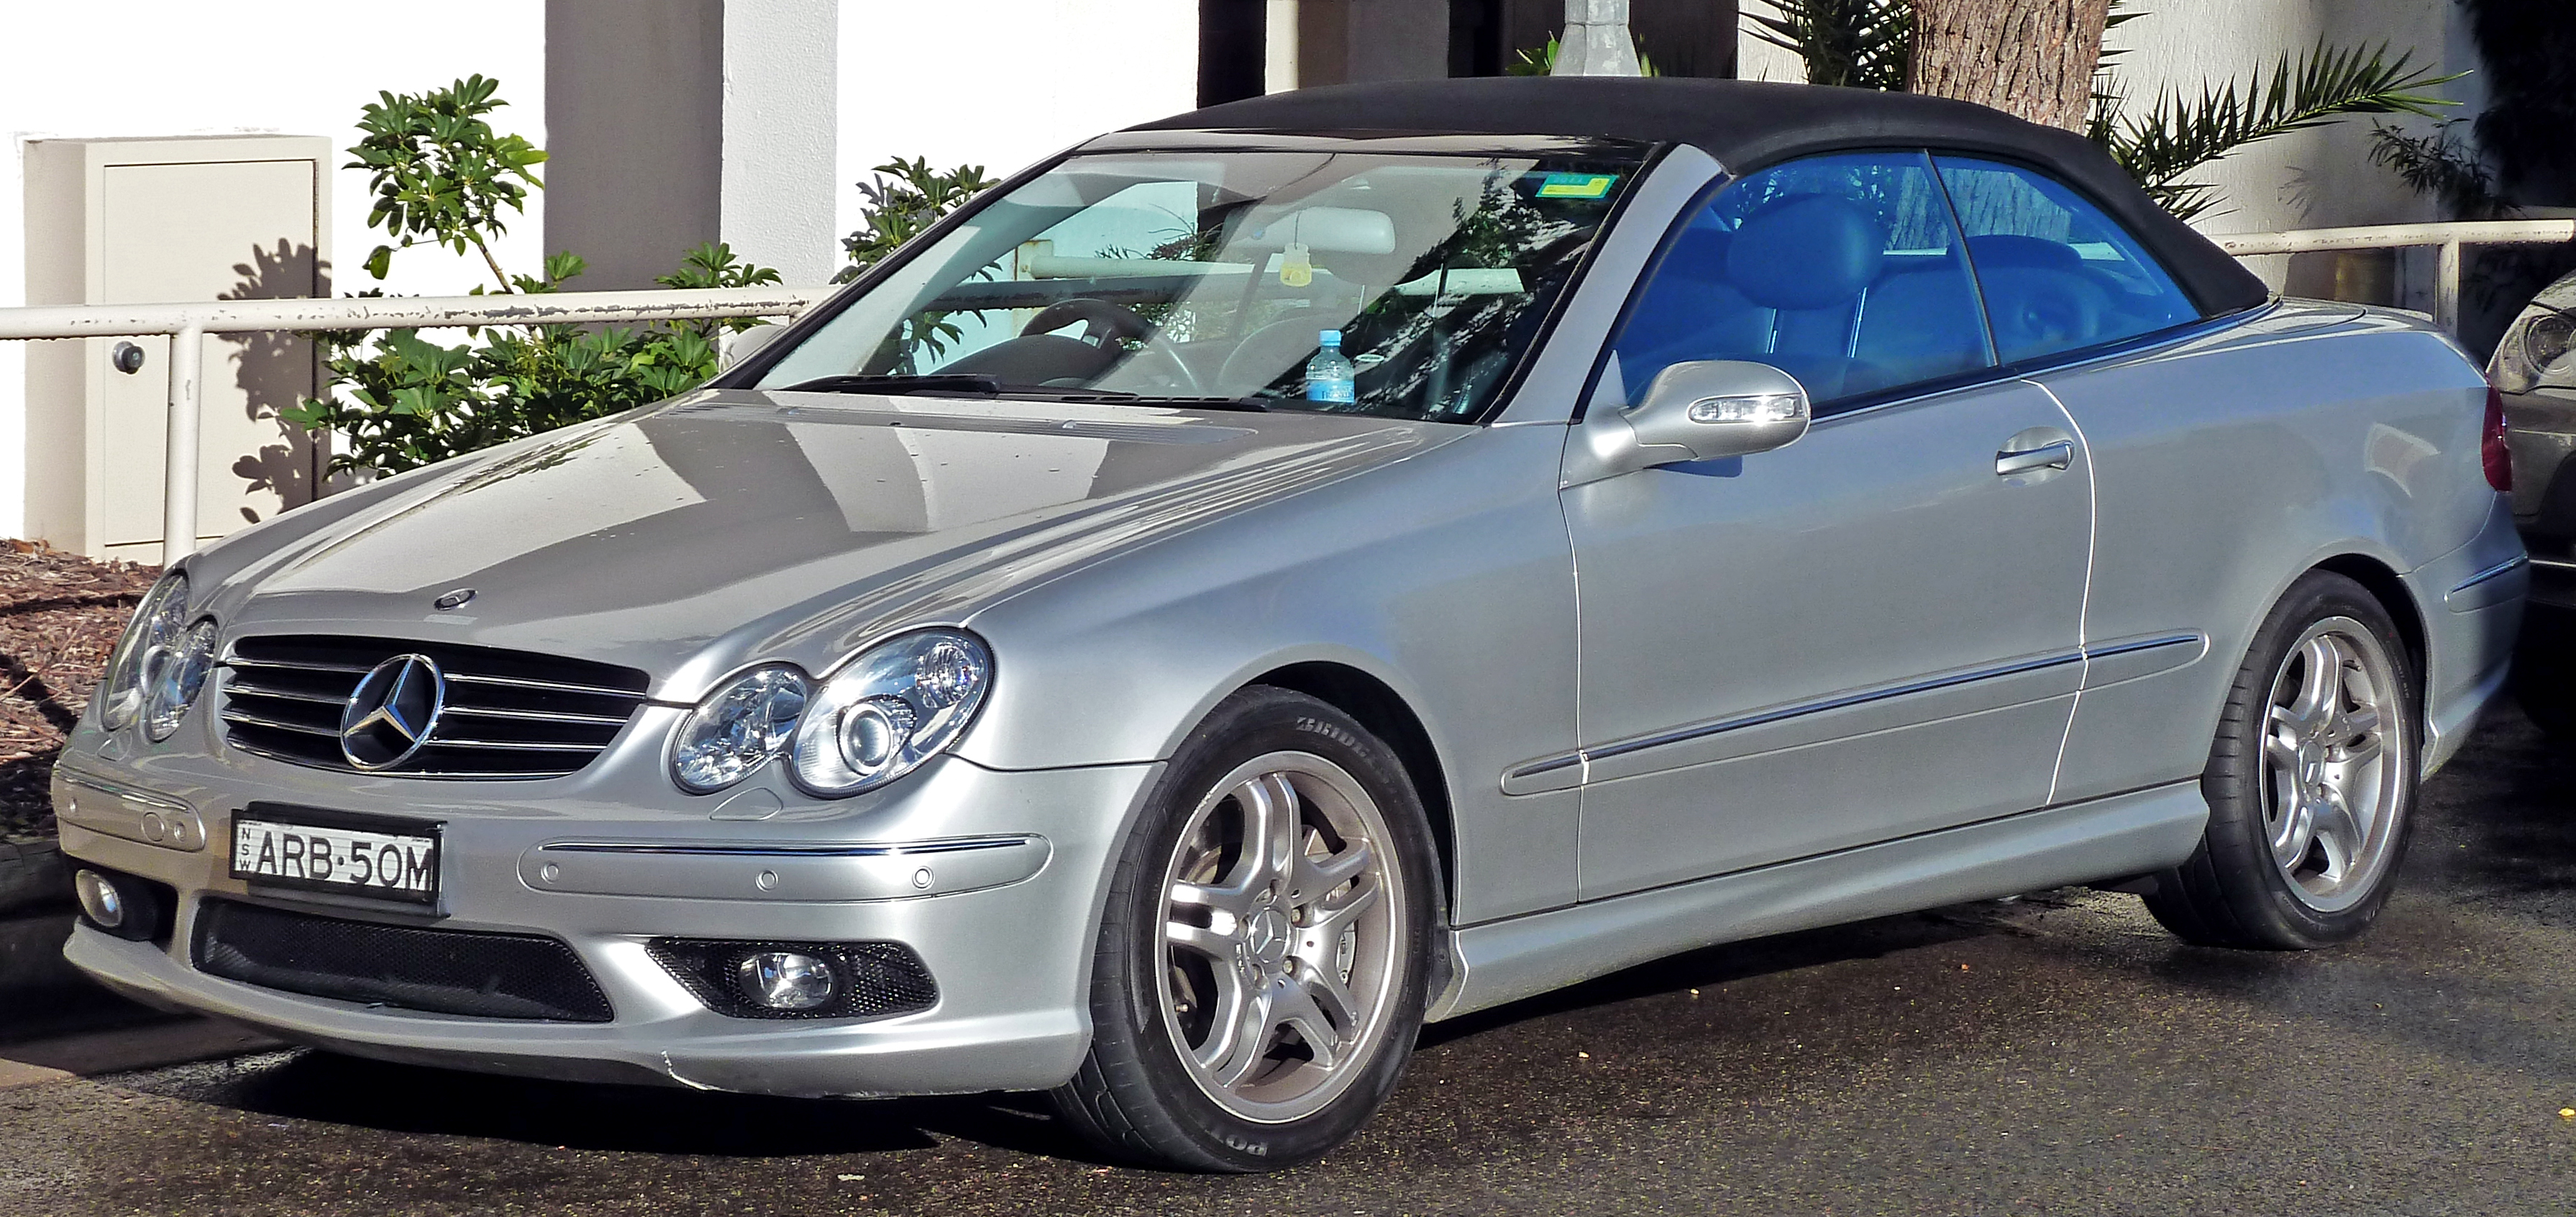 2003 Mercedes-Benz CLK #16